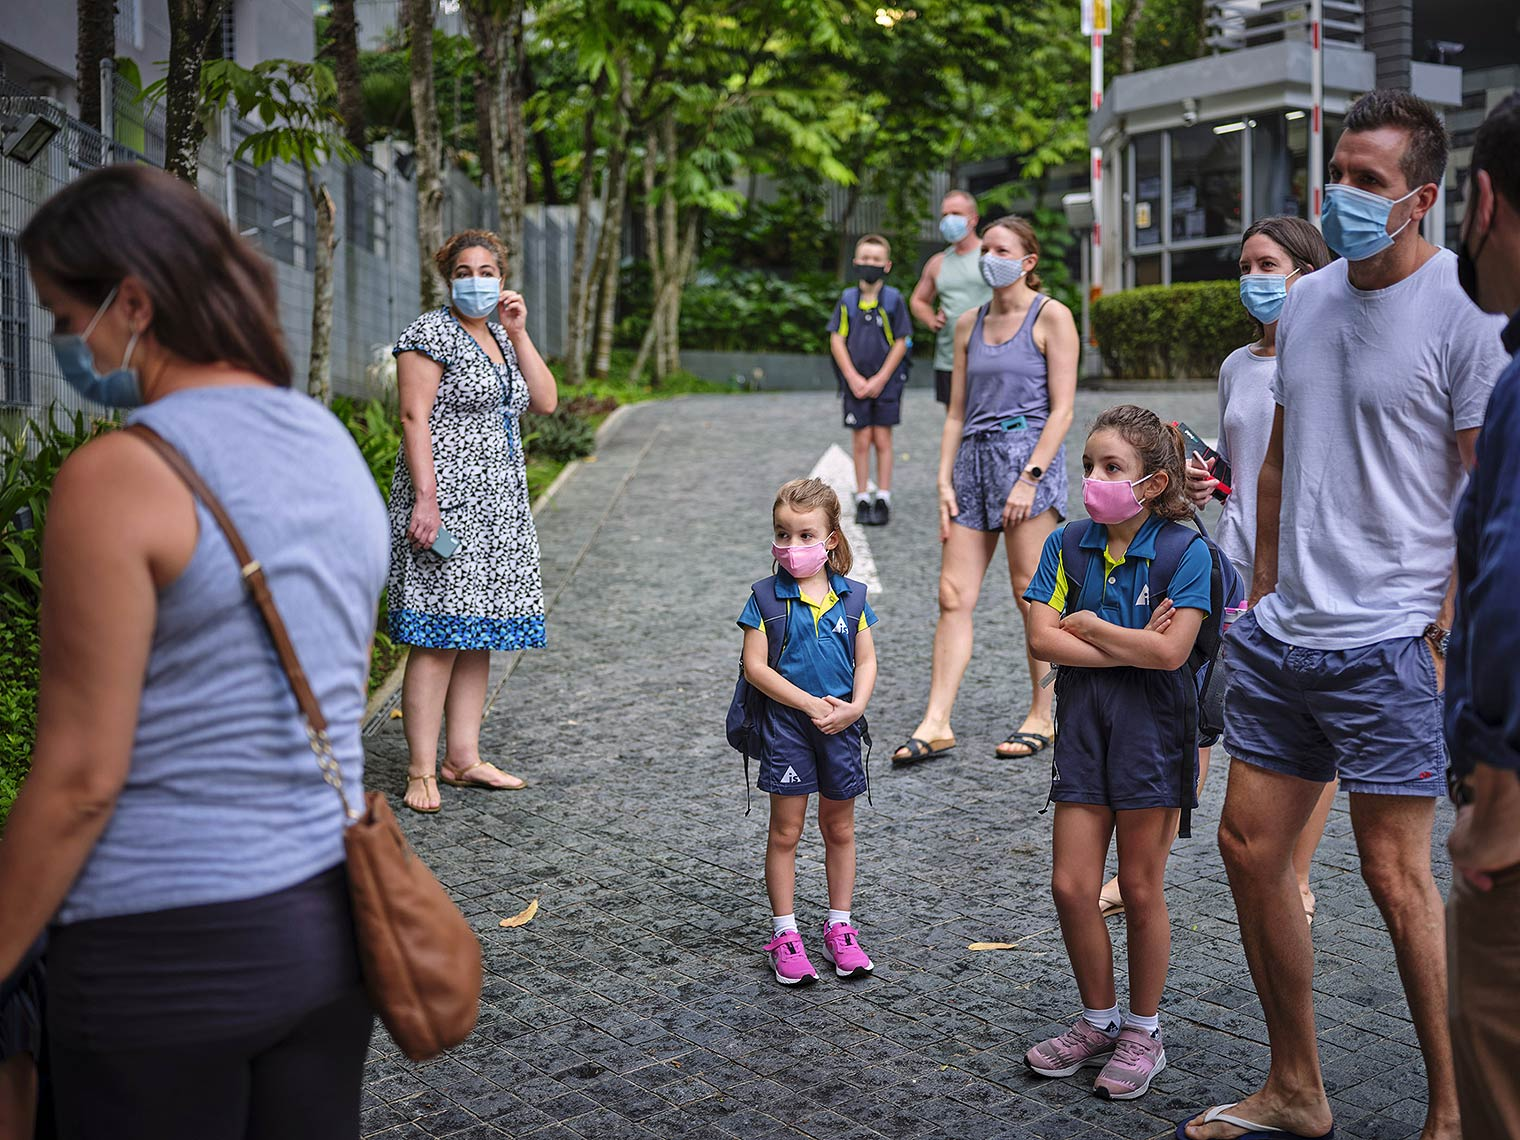 Masked white families standing near each other by a palm-tree lined residential street